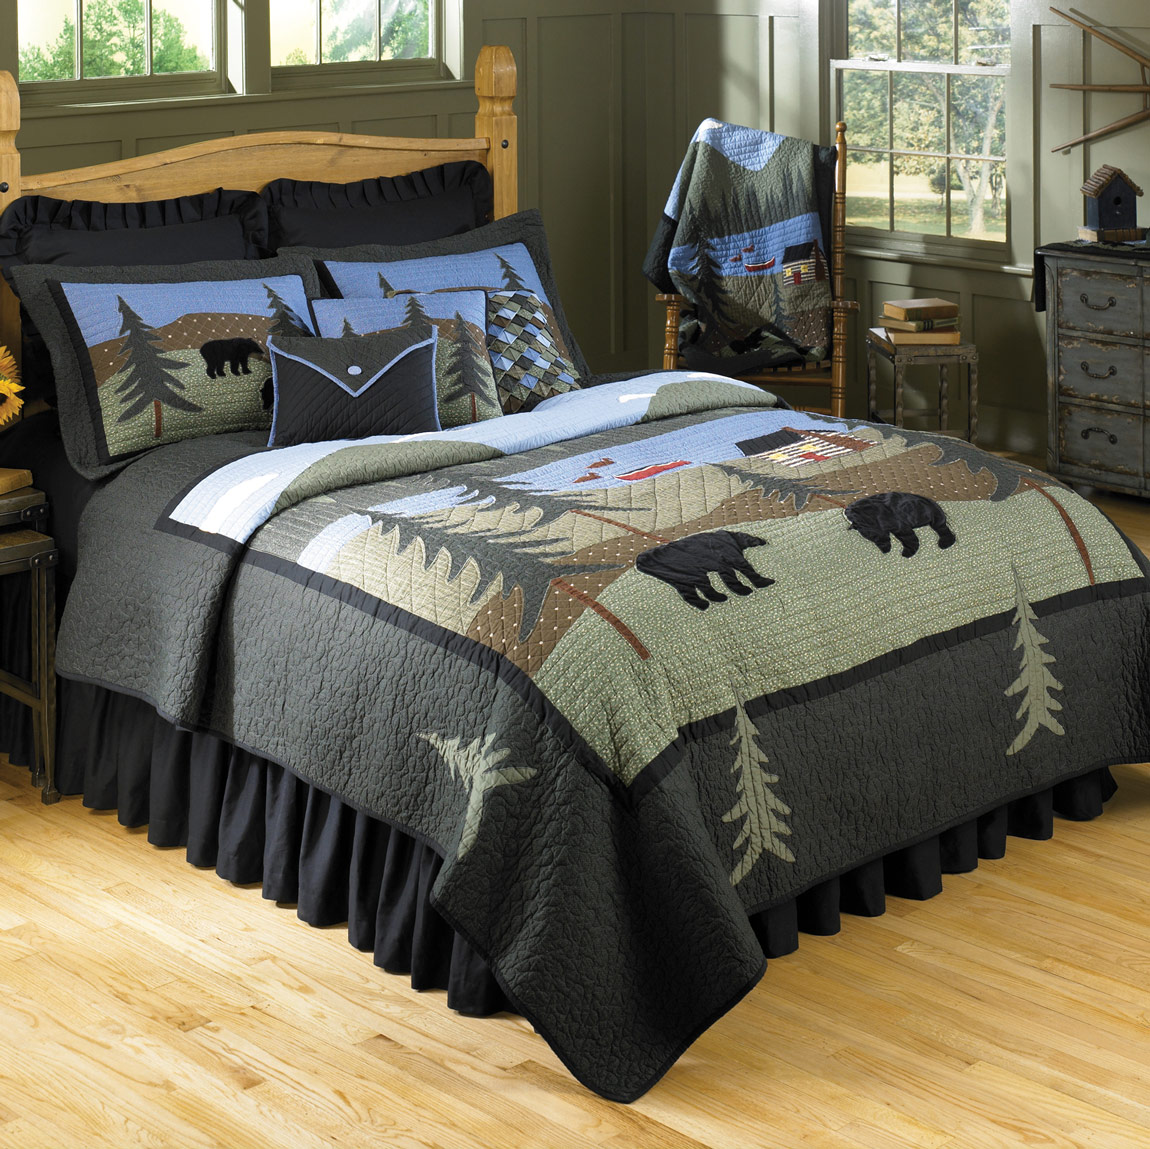 Rustic Bedding King Size Bear Lake Quilt Black Forest Decor